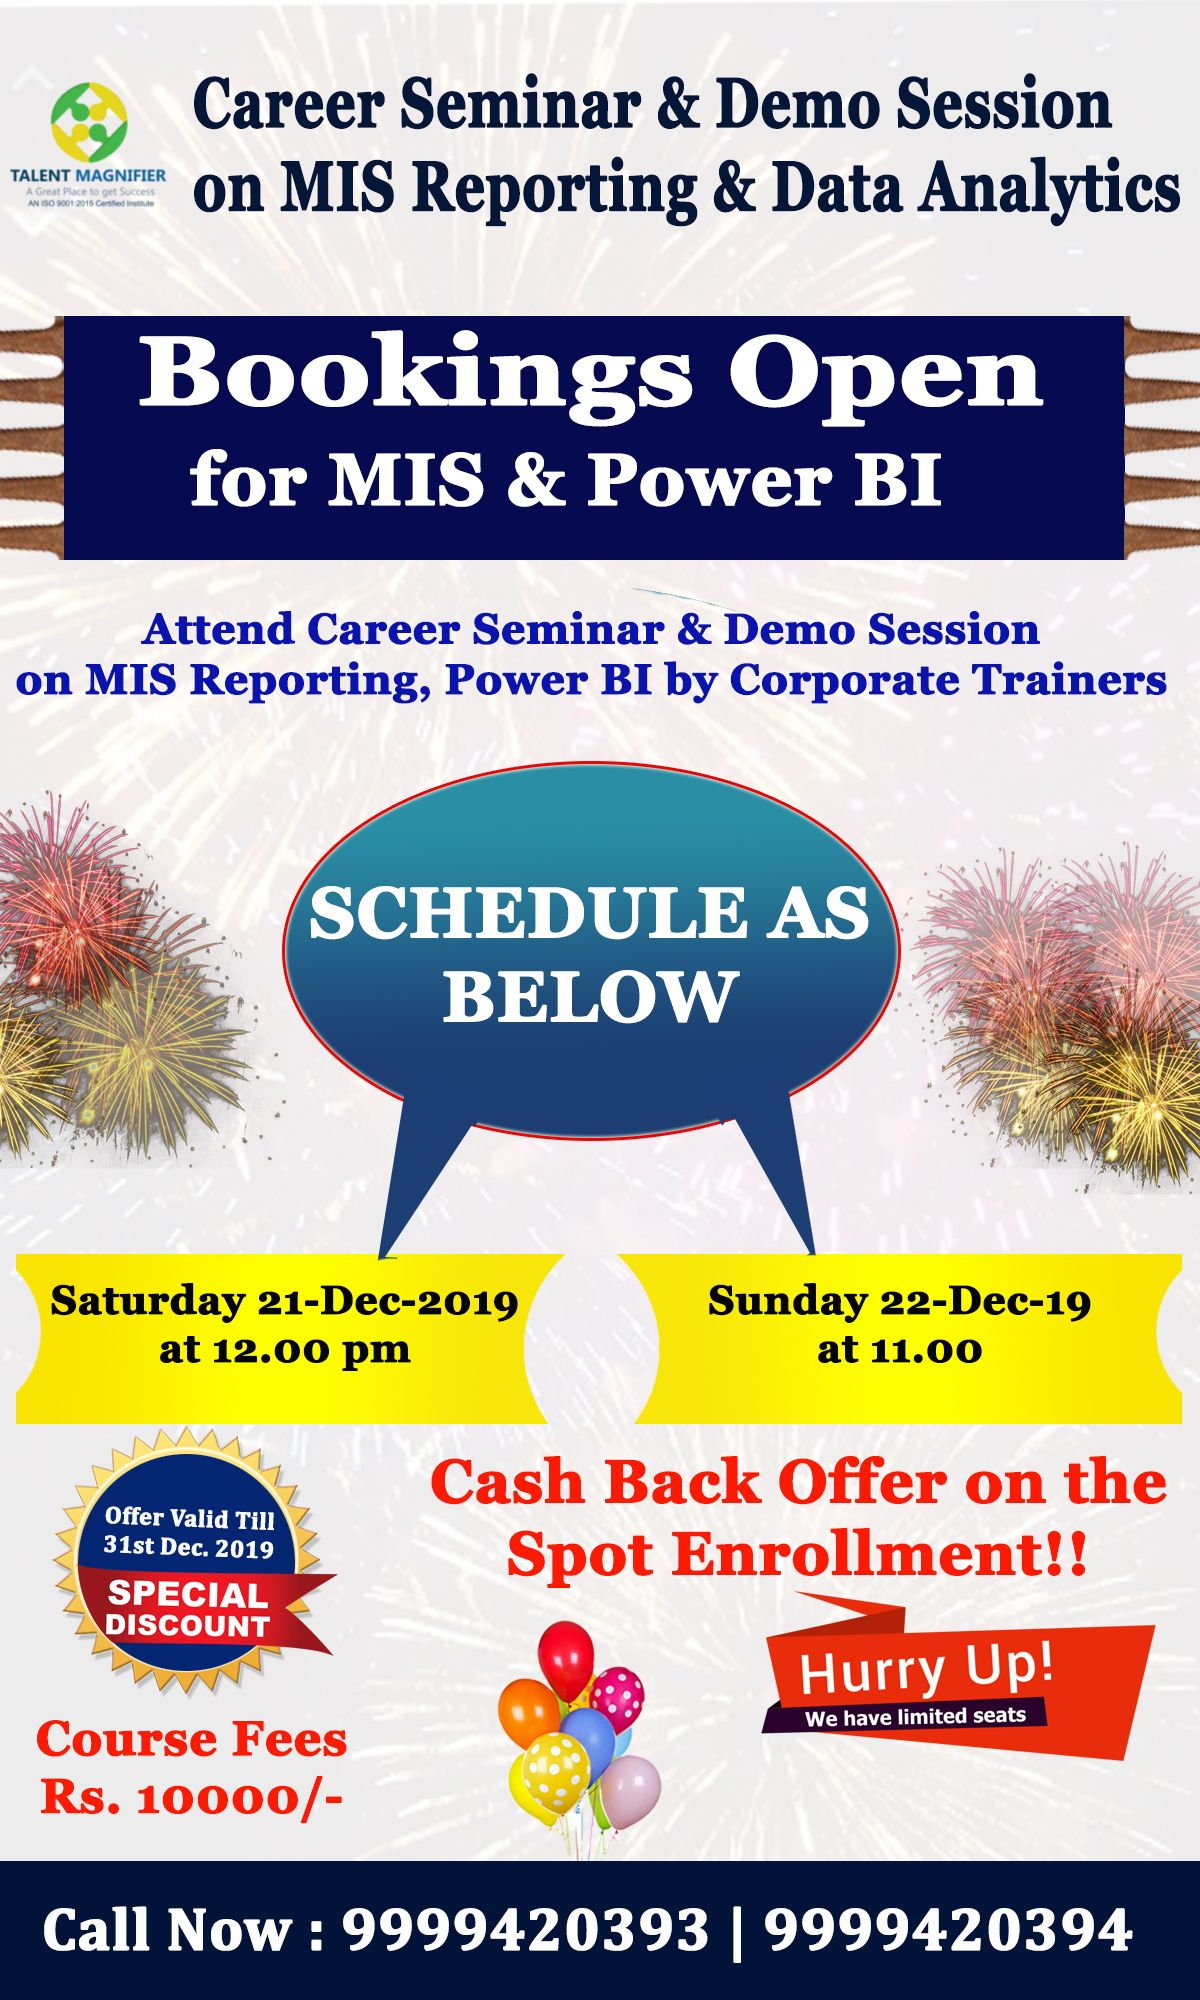 Attend Talent Magnifier's CareerSeminar & DemoSession on